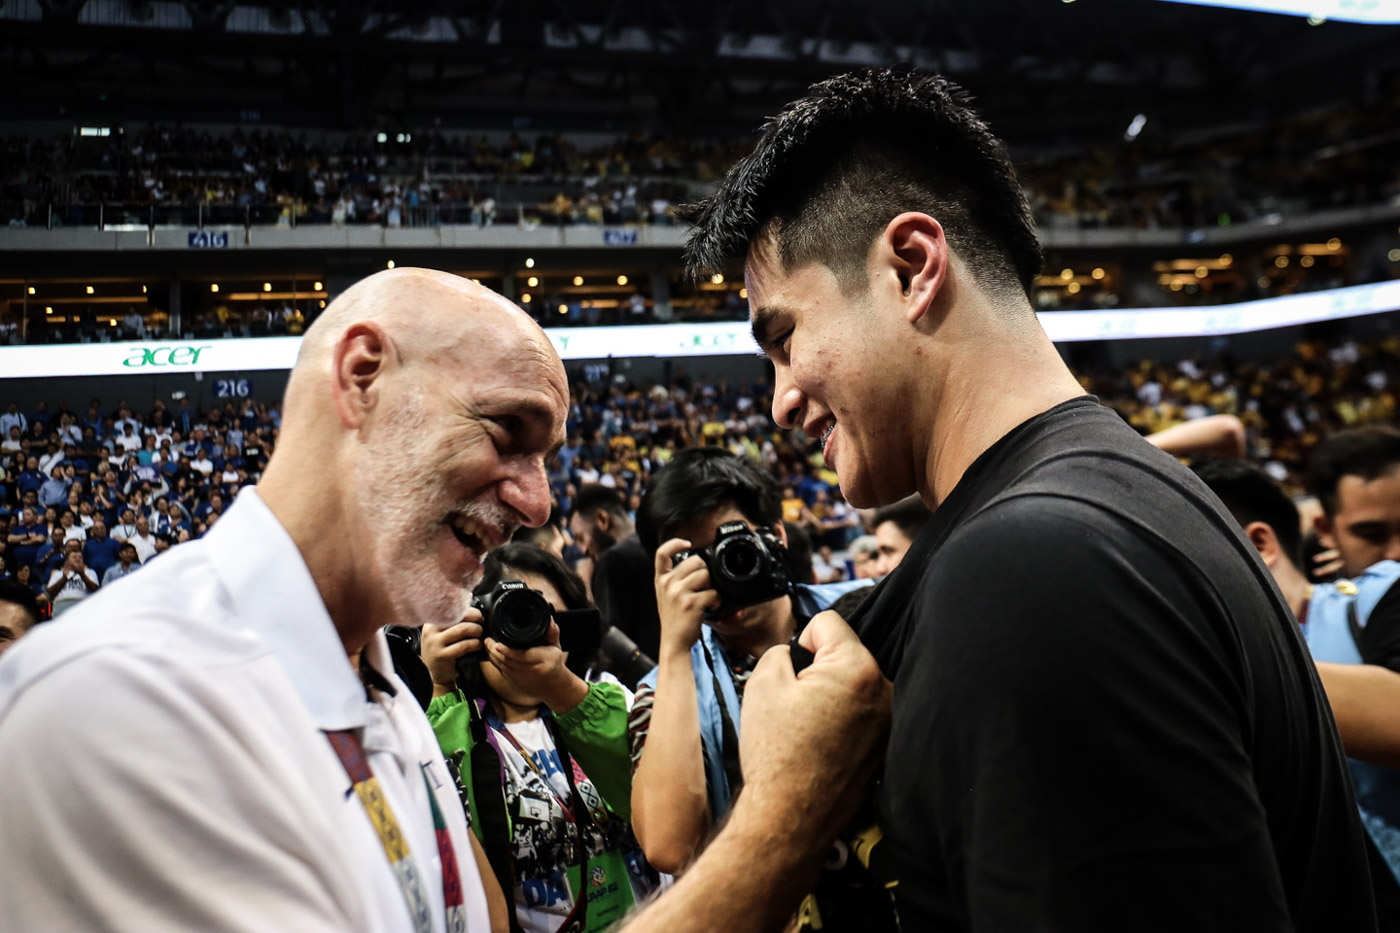 INSTANT IMPACT. Ateneo coach Tab Baldwin salutes SJ Belangel, who delivers the goods in the season-sweeping game. Photo by Josh Albelda/Rappler